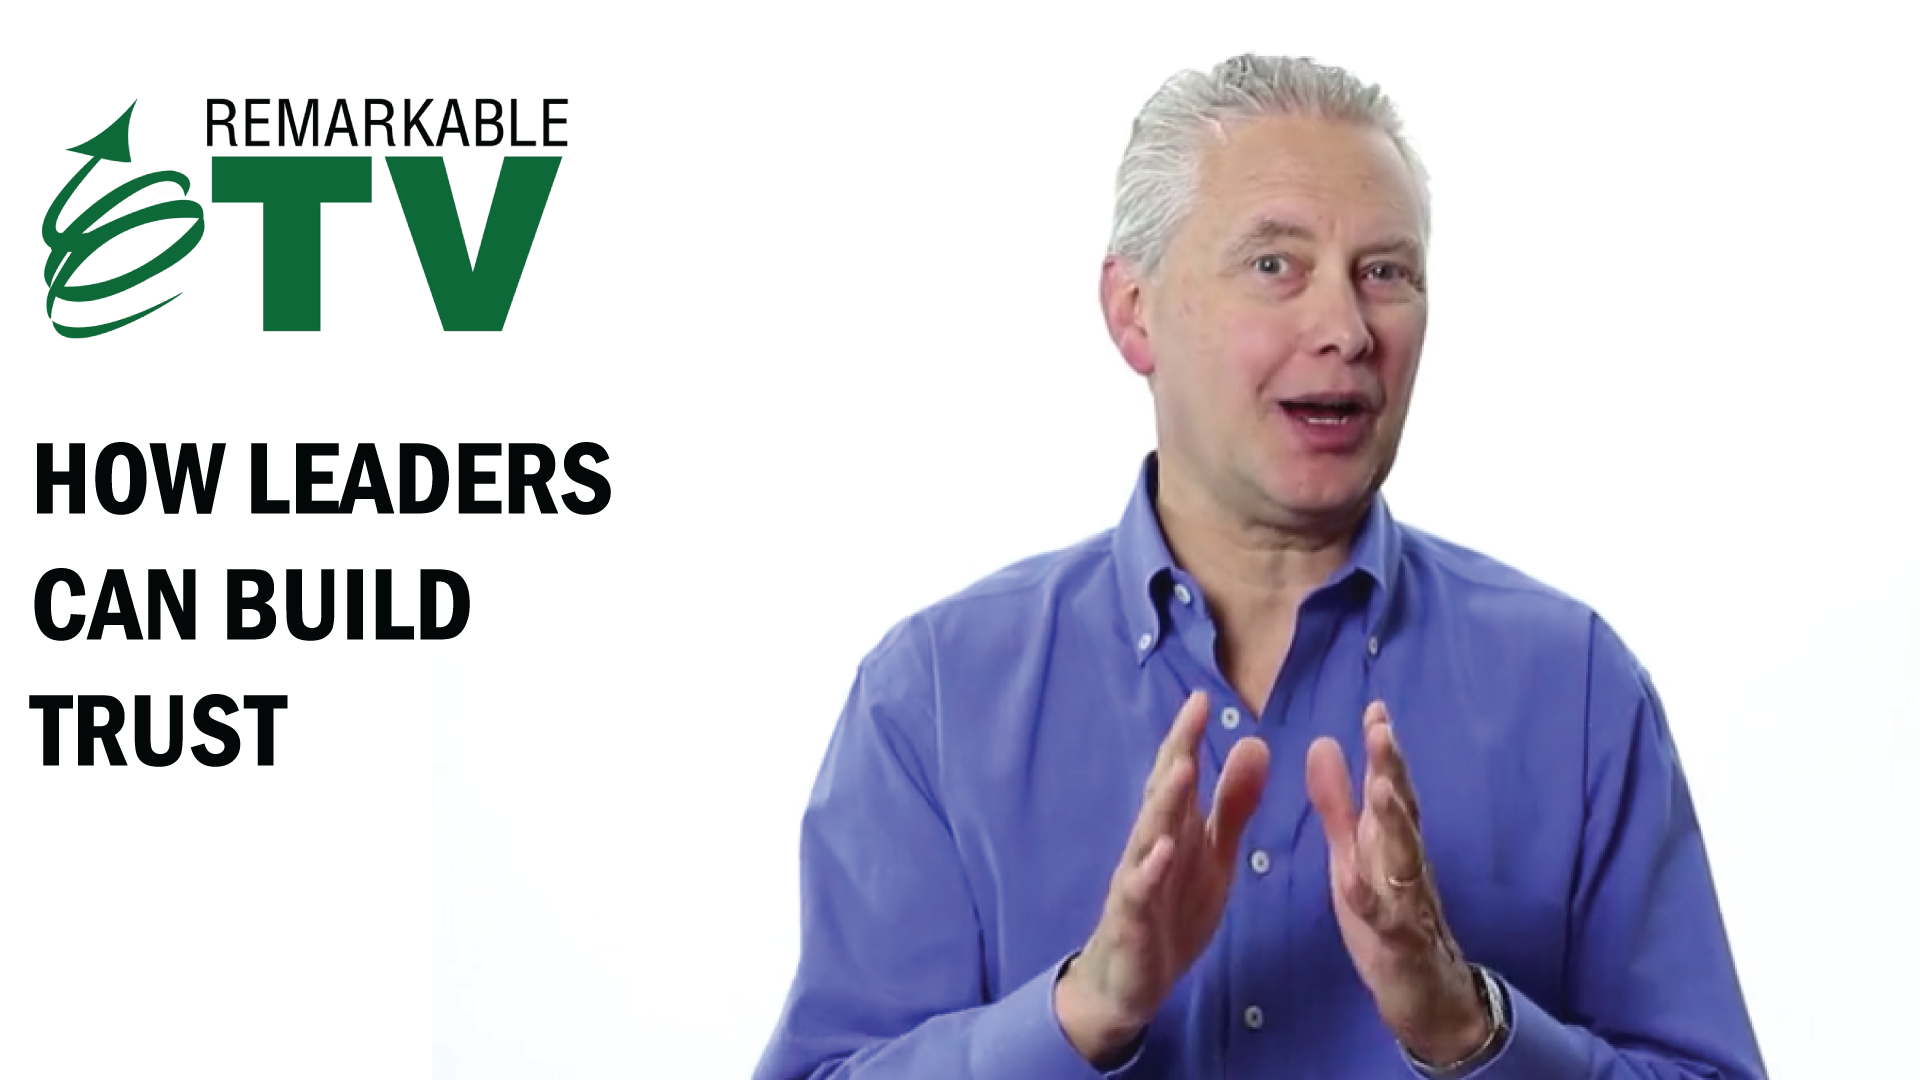 In this video, Kevin Eikenberry talks about how leaders can build trust. | Remarkable TV